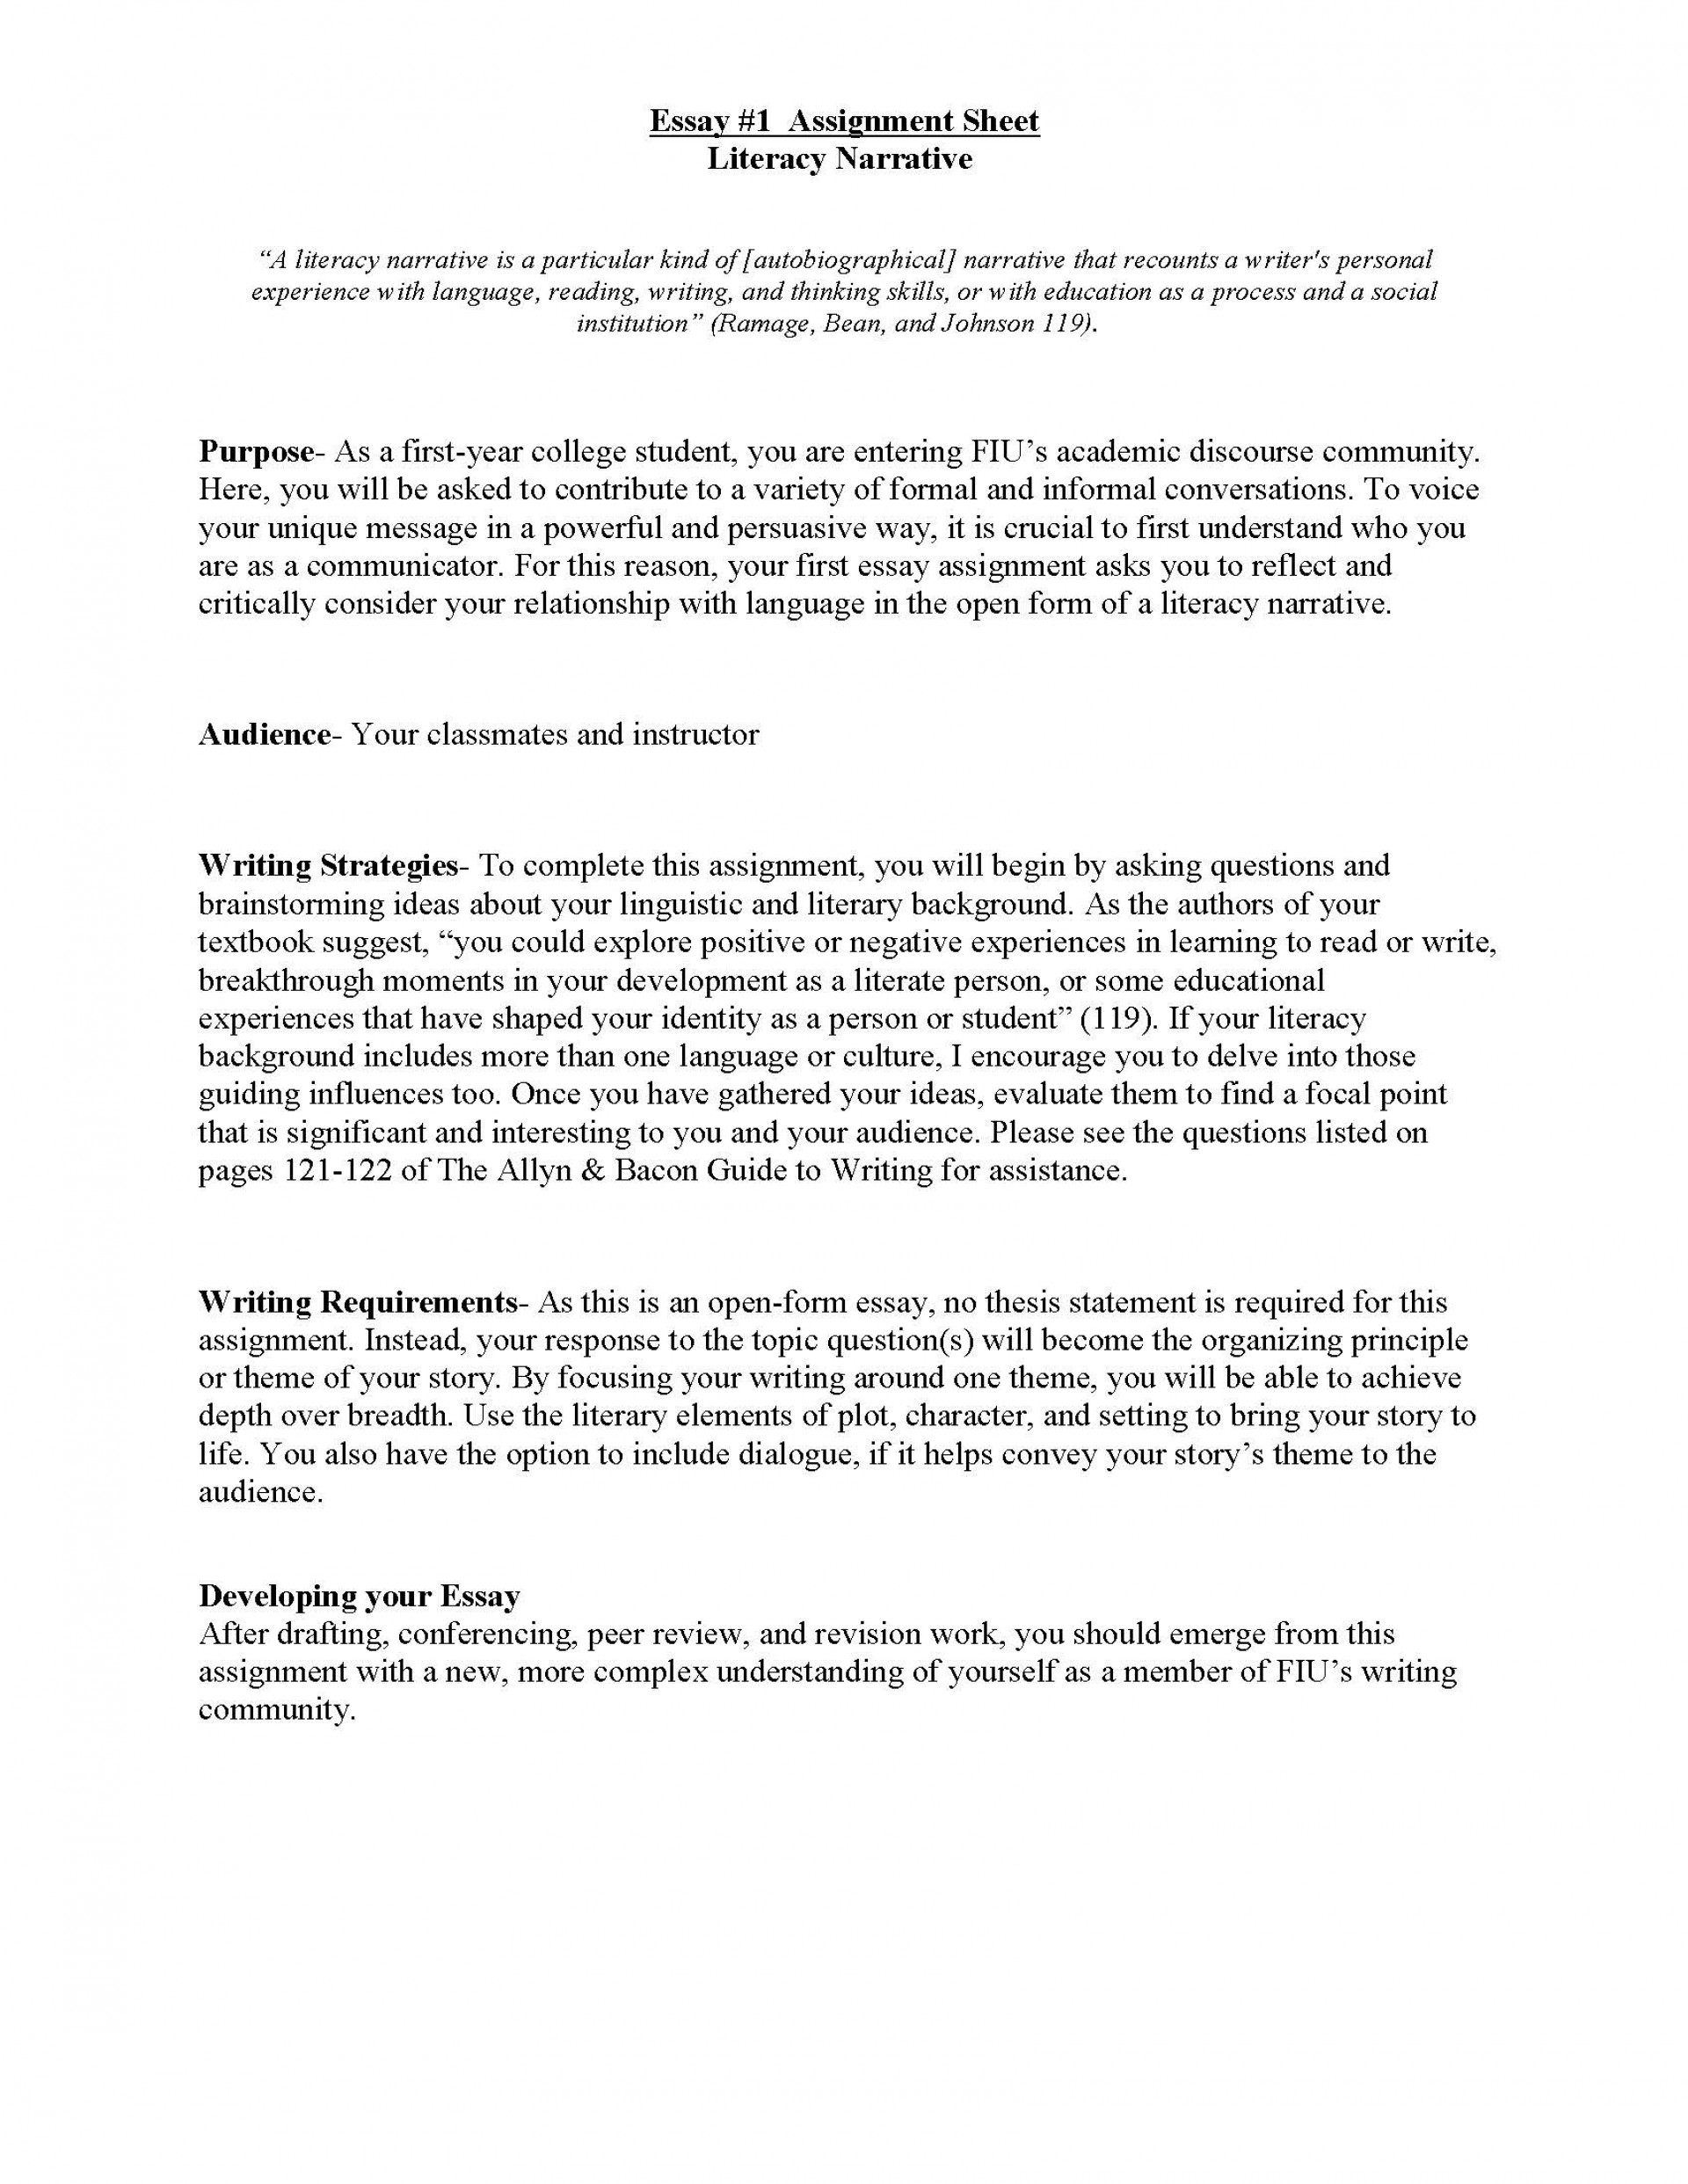 020 Essay Example Literacy Narrative Unit Assignment Spring 2012 Page 1 Fascinating Define Narrative/descriptive Definition Of Writing The Term 1920